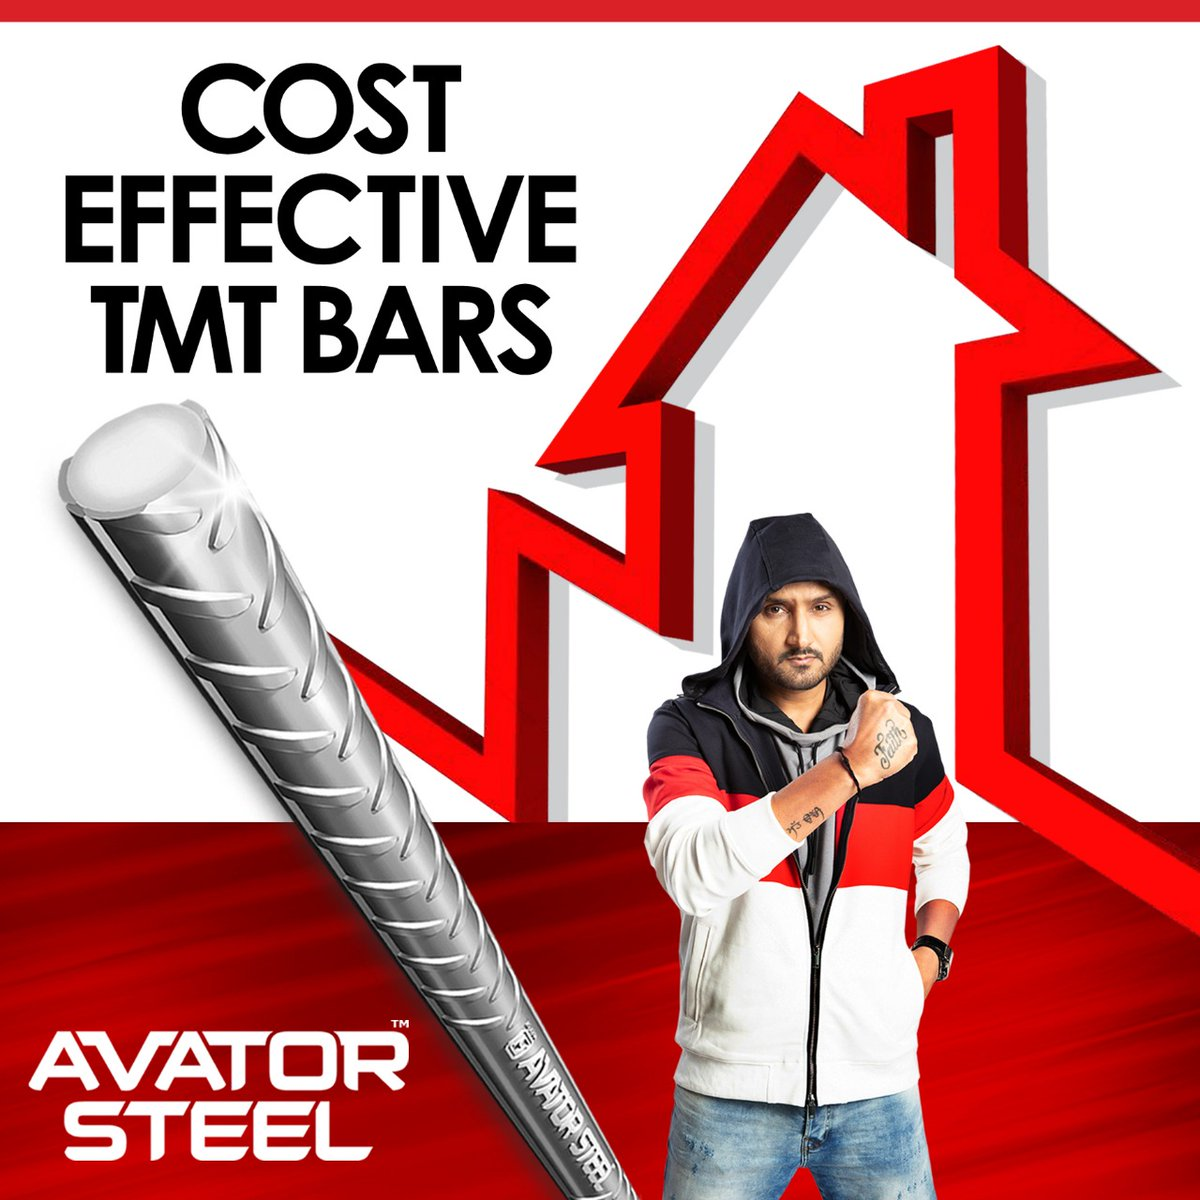 It requires less TMT bars to build your home when you choose #AvatorSteel.  Hence saving cost and time.   @harbhajan_singh